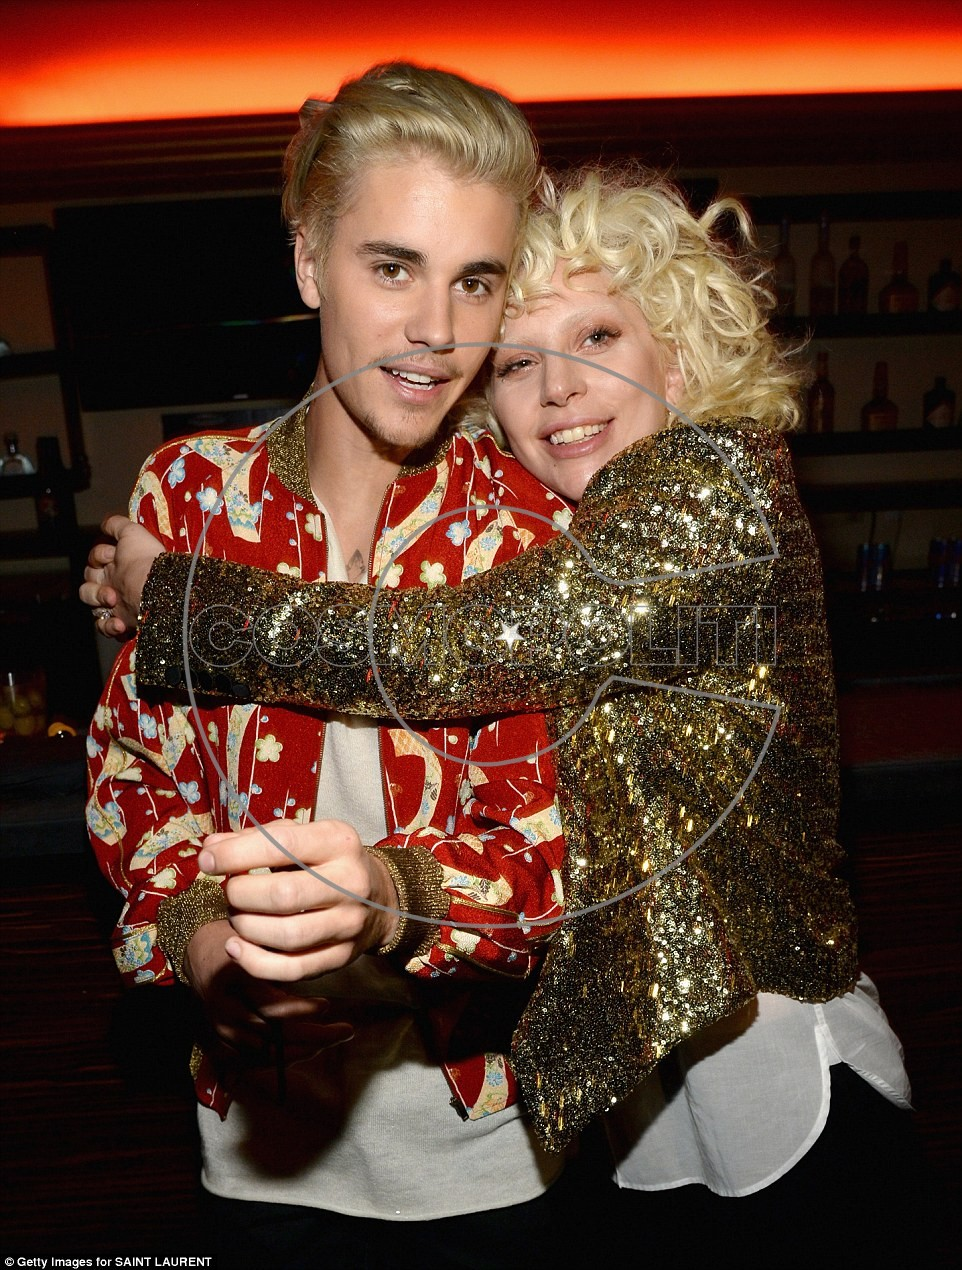 3112FBAA00000578-3441779-Catching_up_Gaga_appeared_thrilled_to_see_pop_star_Justin_Bieber-a-2_1455179227709